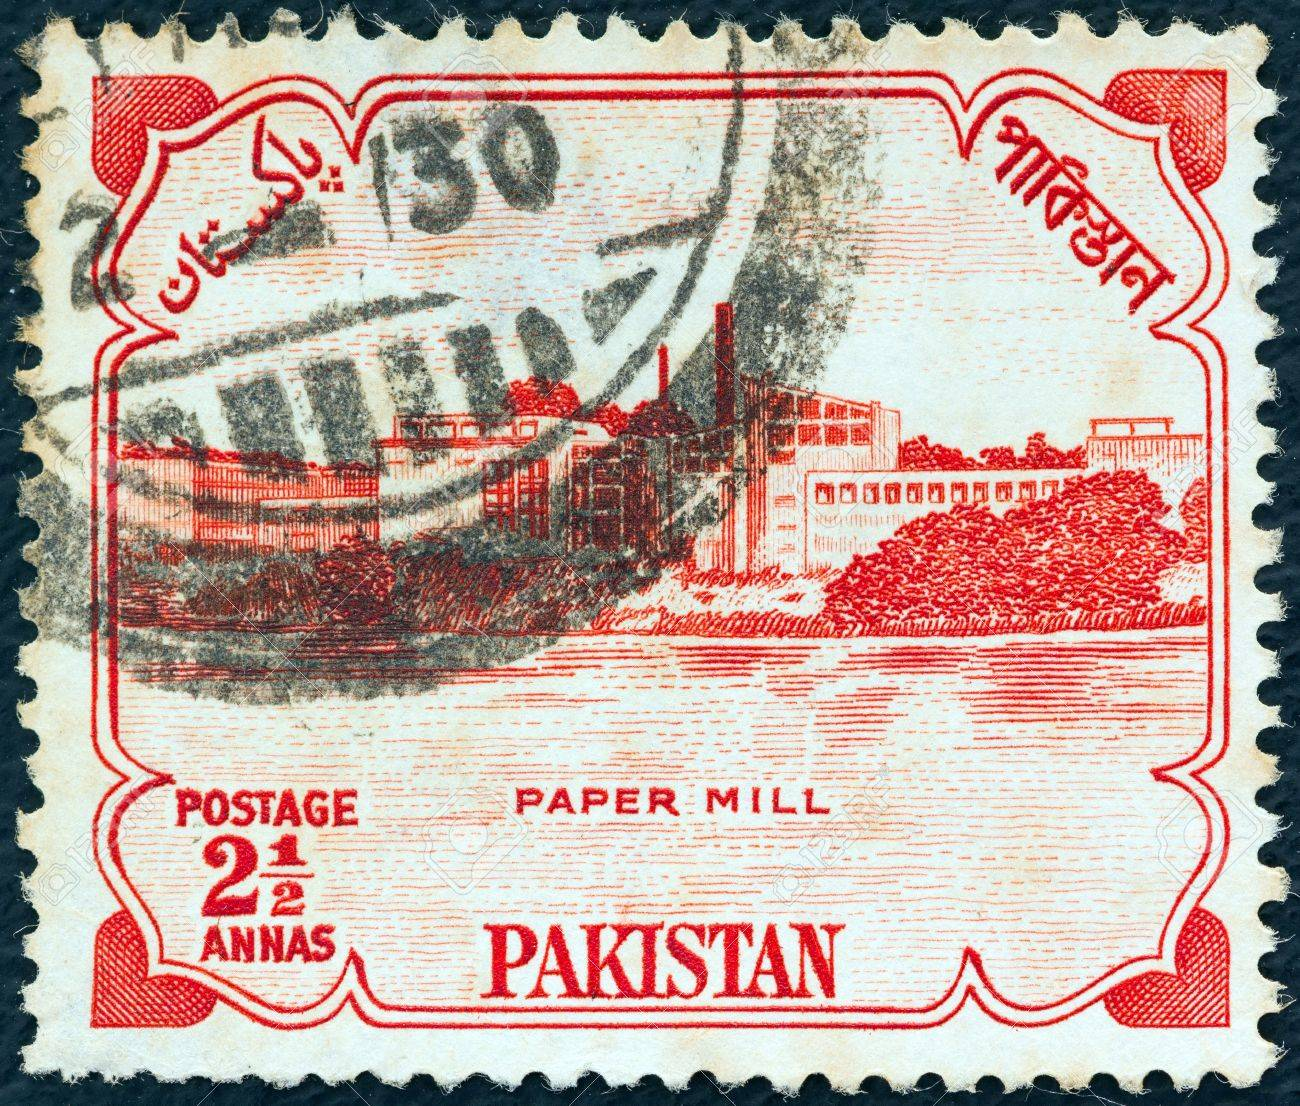 PAKISTAN - CIRCA 1955: A stamp printed in Pakistan issued for